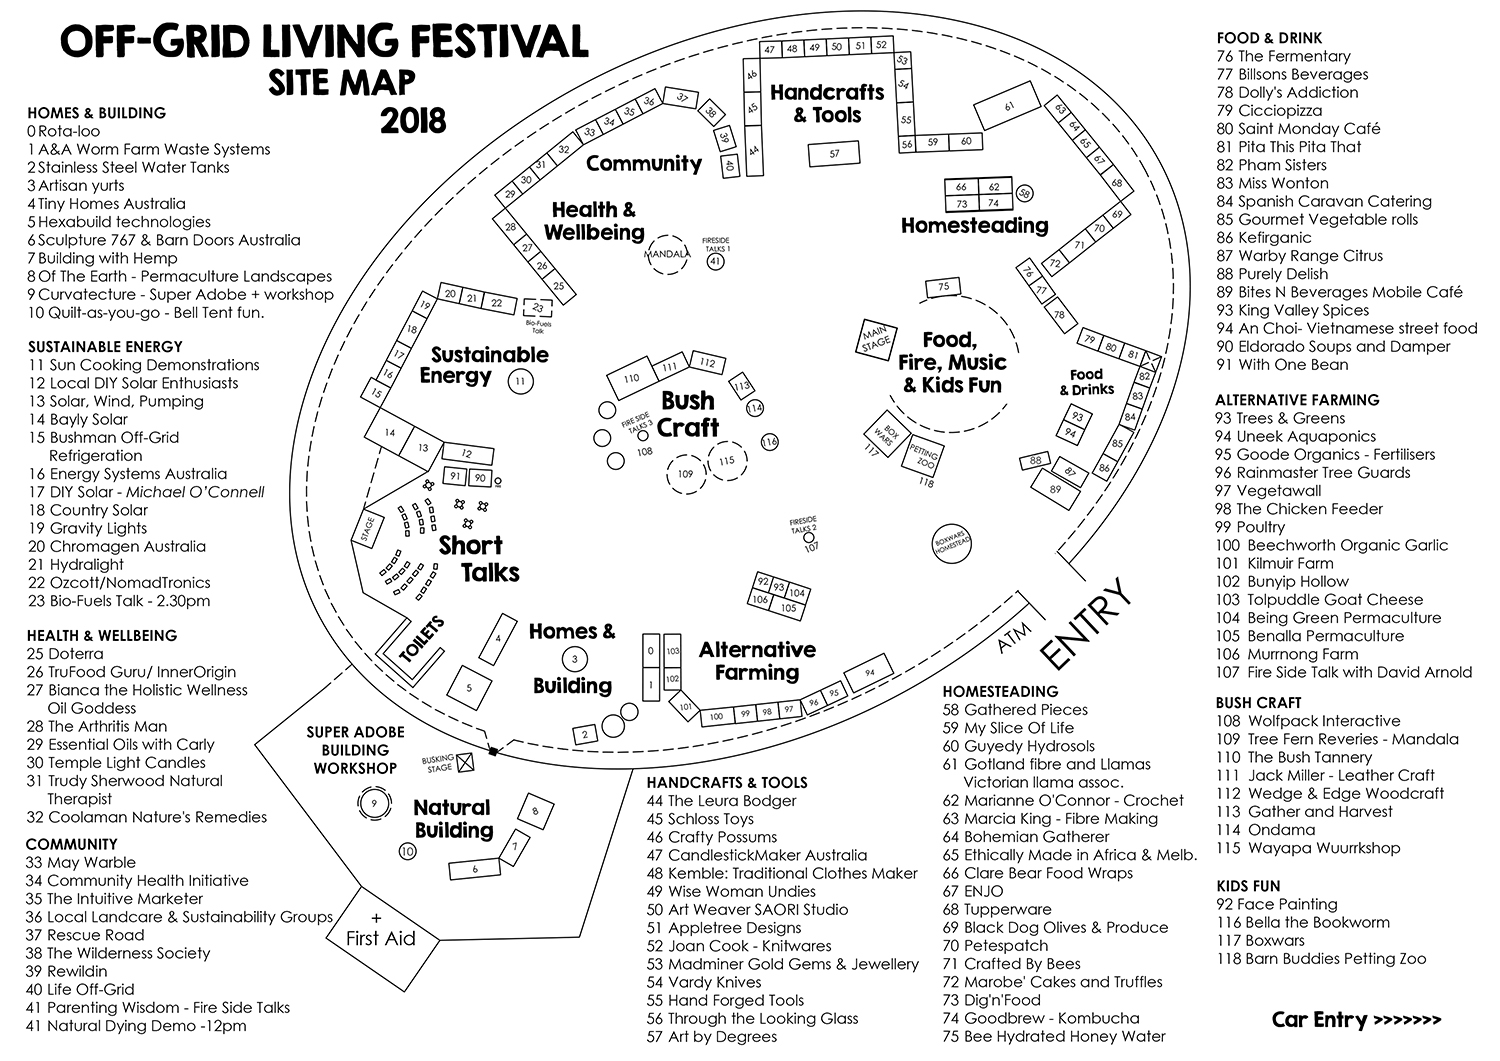 OffGridLivingFestival - Site Map SML